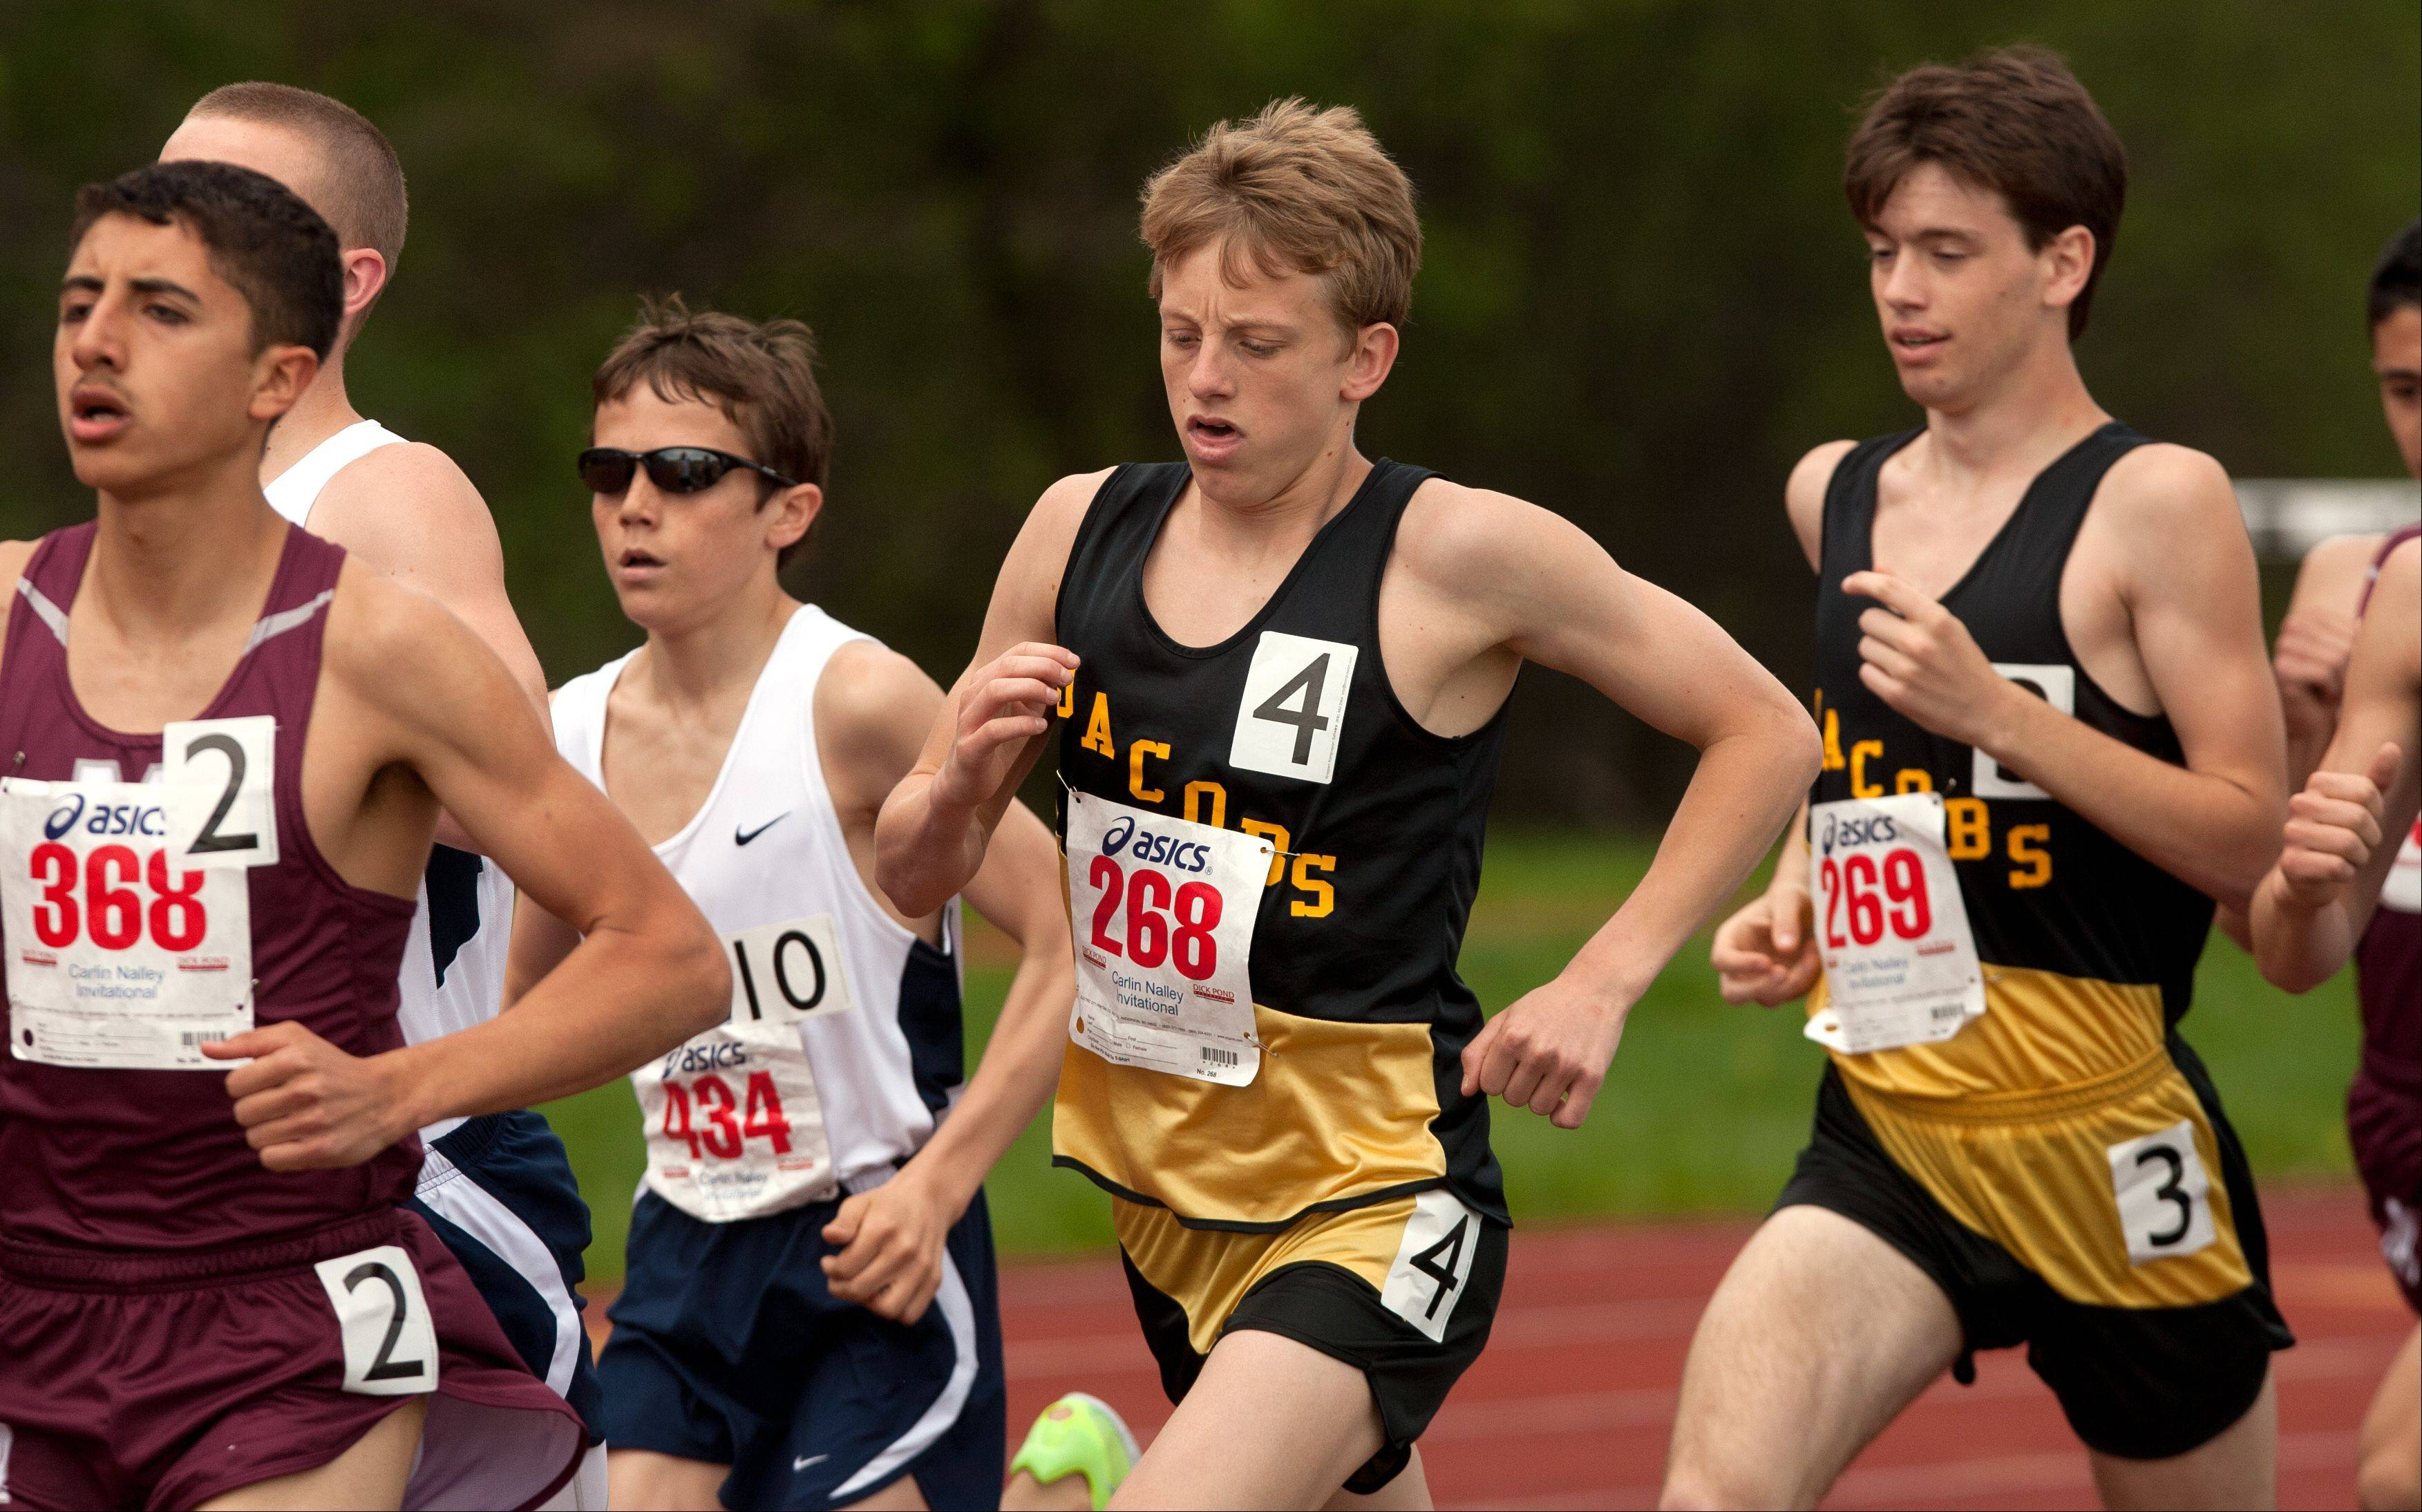 Jacobs' Matt Goldby and Matt Johnson, right, run the 3200 meter run during the 46th annual Carlin Nalley Boys� Track Invitational at Benedictine University in Lisle.